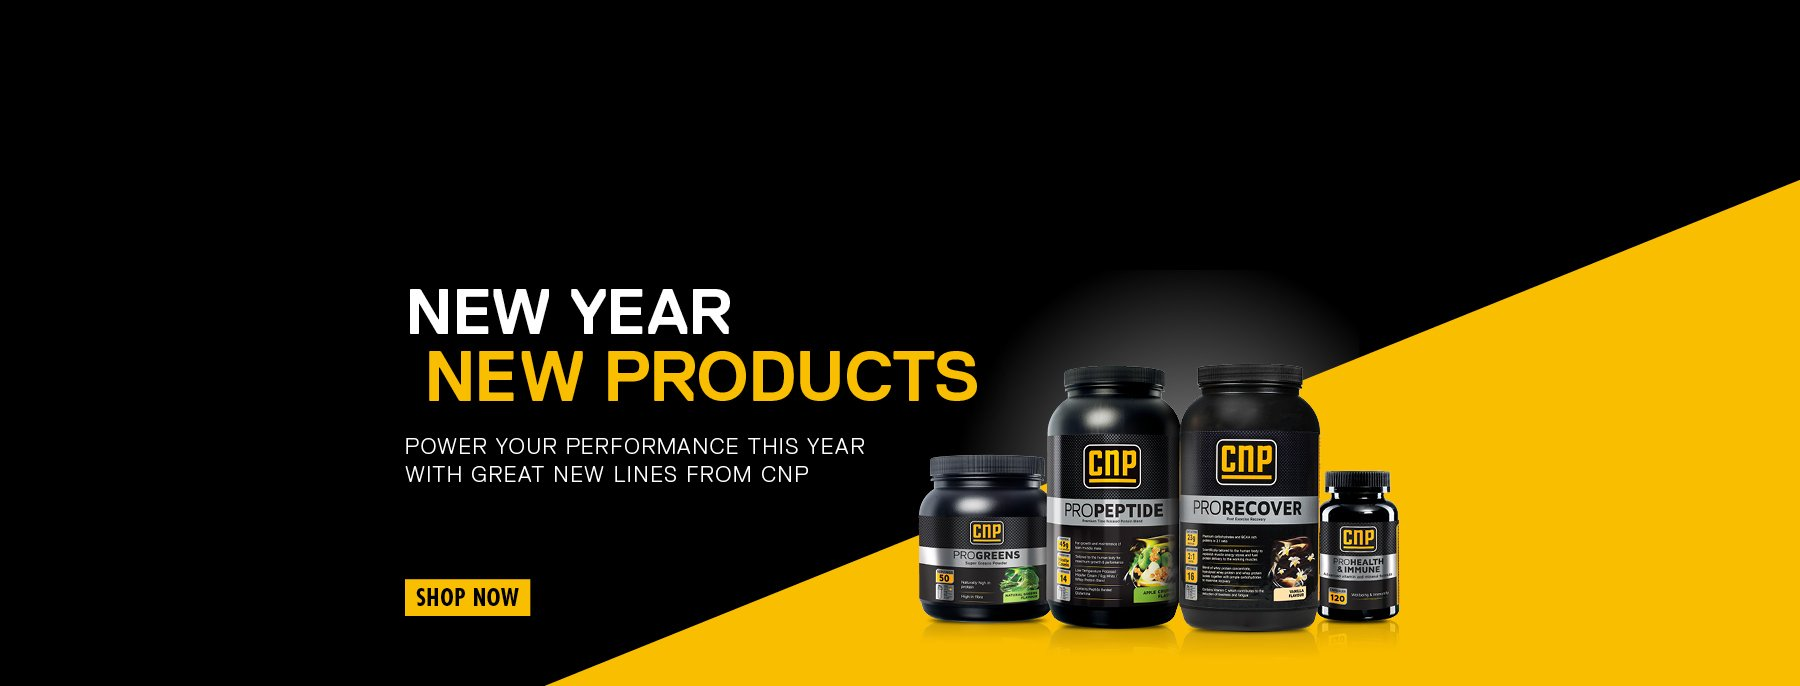 New Year New Products